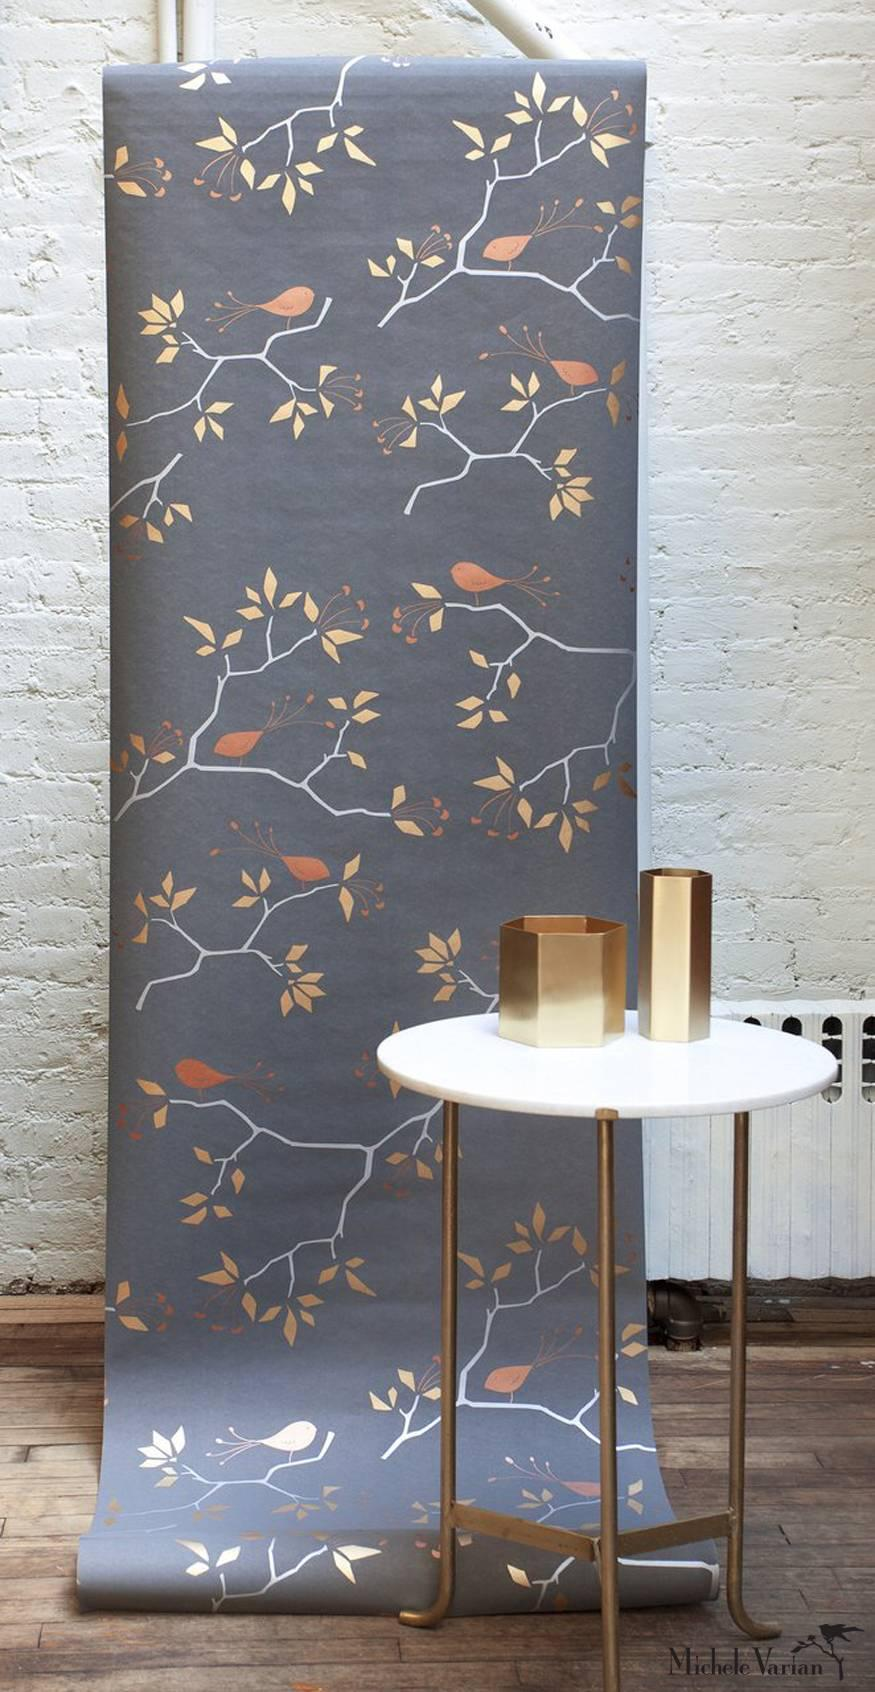 Geobird Screen Printed Wallpaper in Metallic Silver, Gold and Bronze on Graphite For Sale at 1stdibs